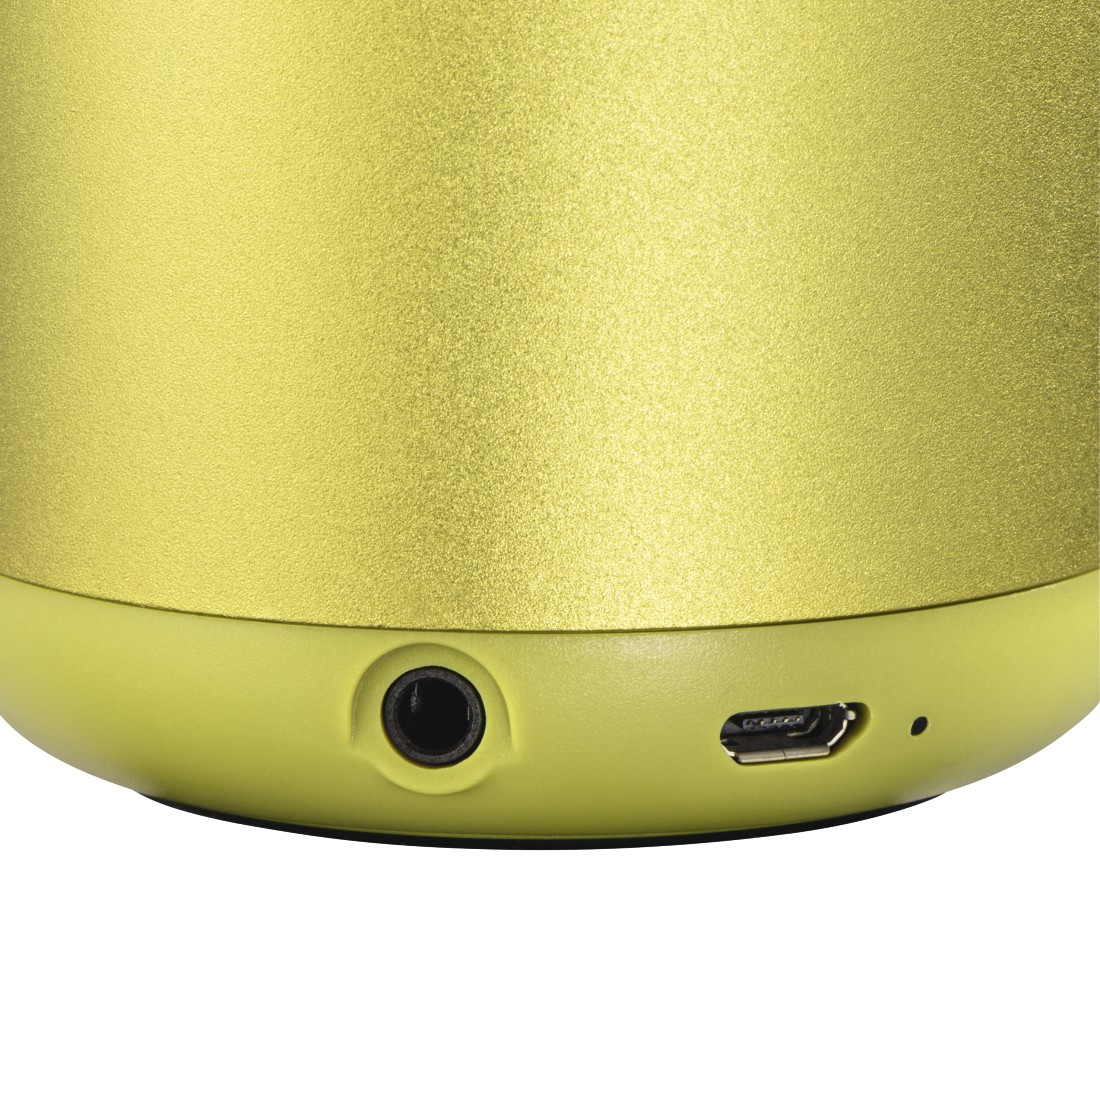 "dex3 High-Res Detail 3 - Hama, Enceinte Bluetooth® ""Drum 2.0"", 3,5 W, vert jaune"